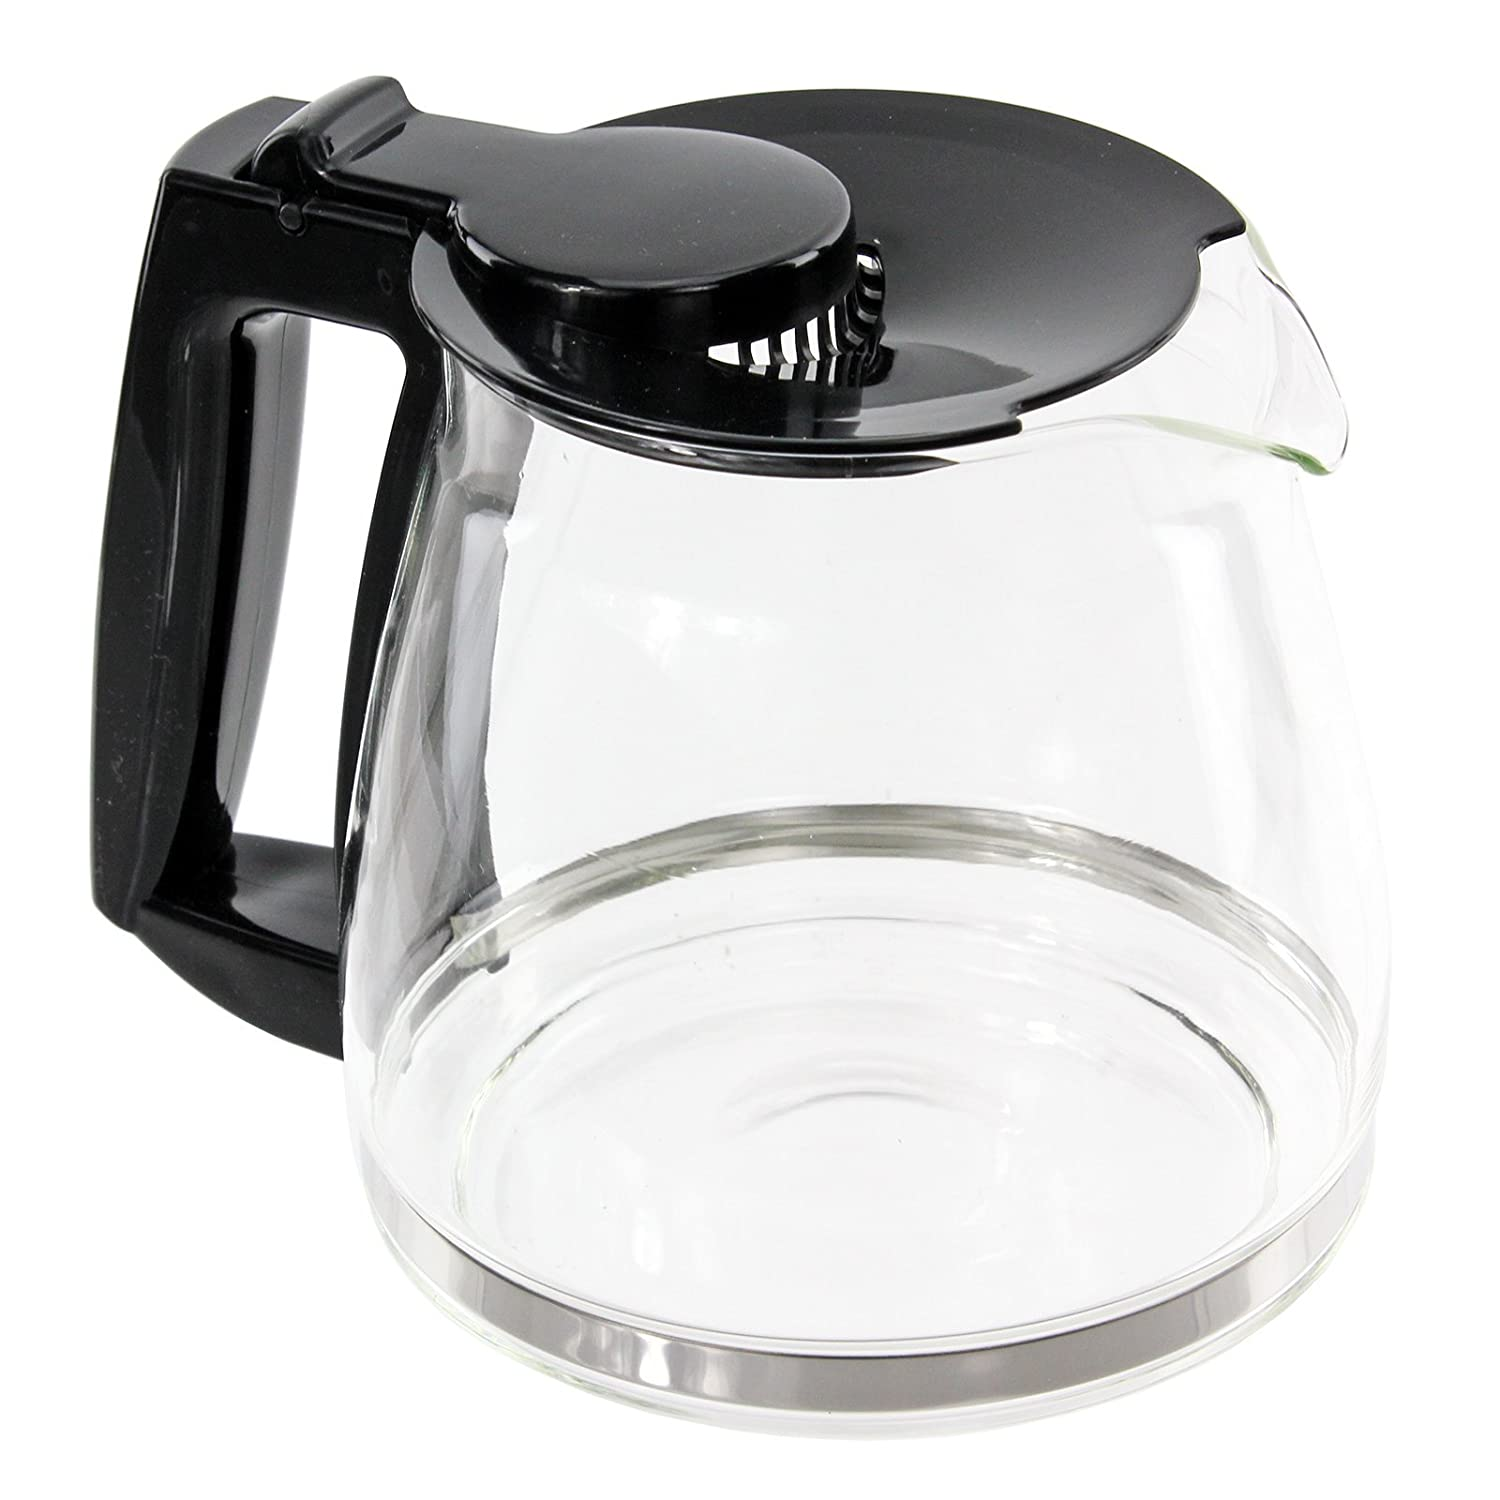 Genuine Melitta Filter Coffee Maker Glass Jug & Lid for Optima M801 M810 M818 Machines (8 Cup)